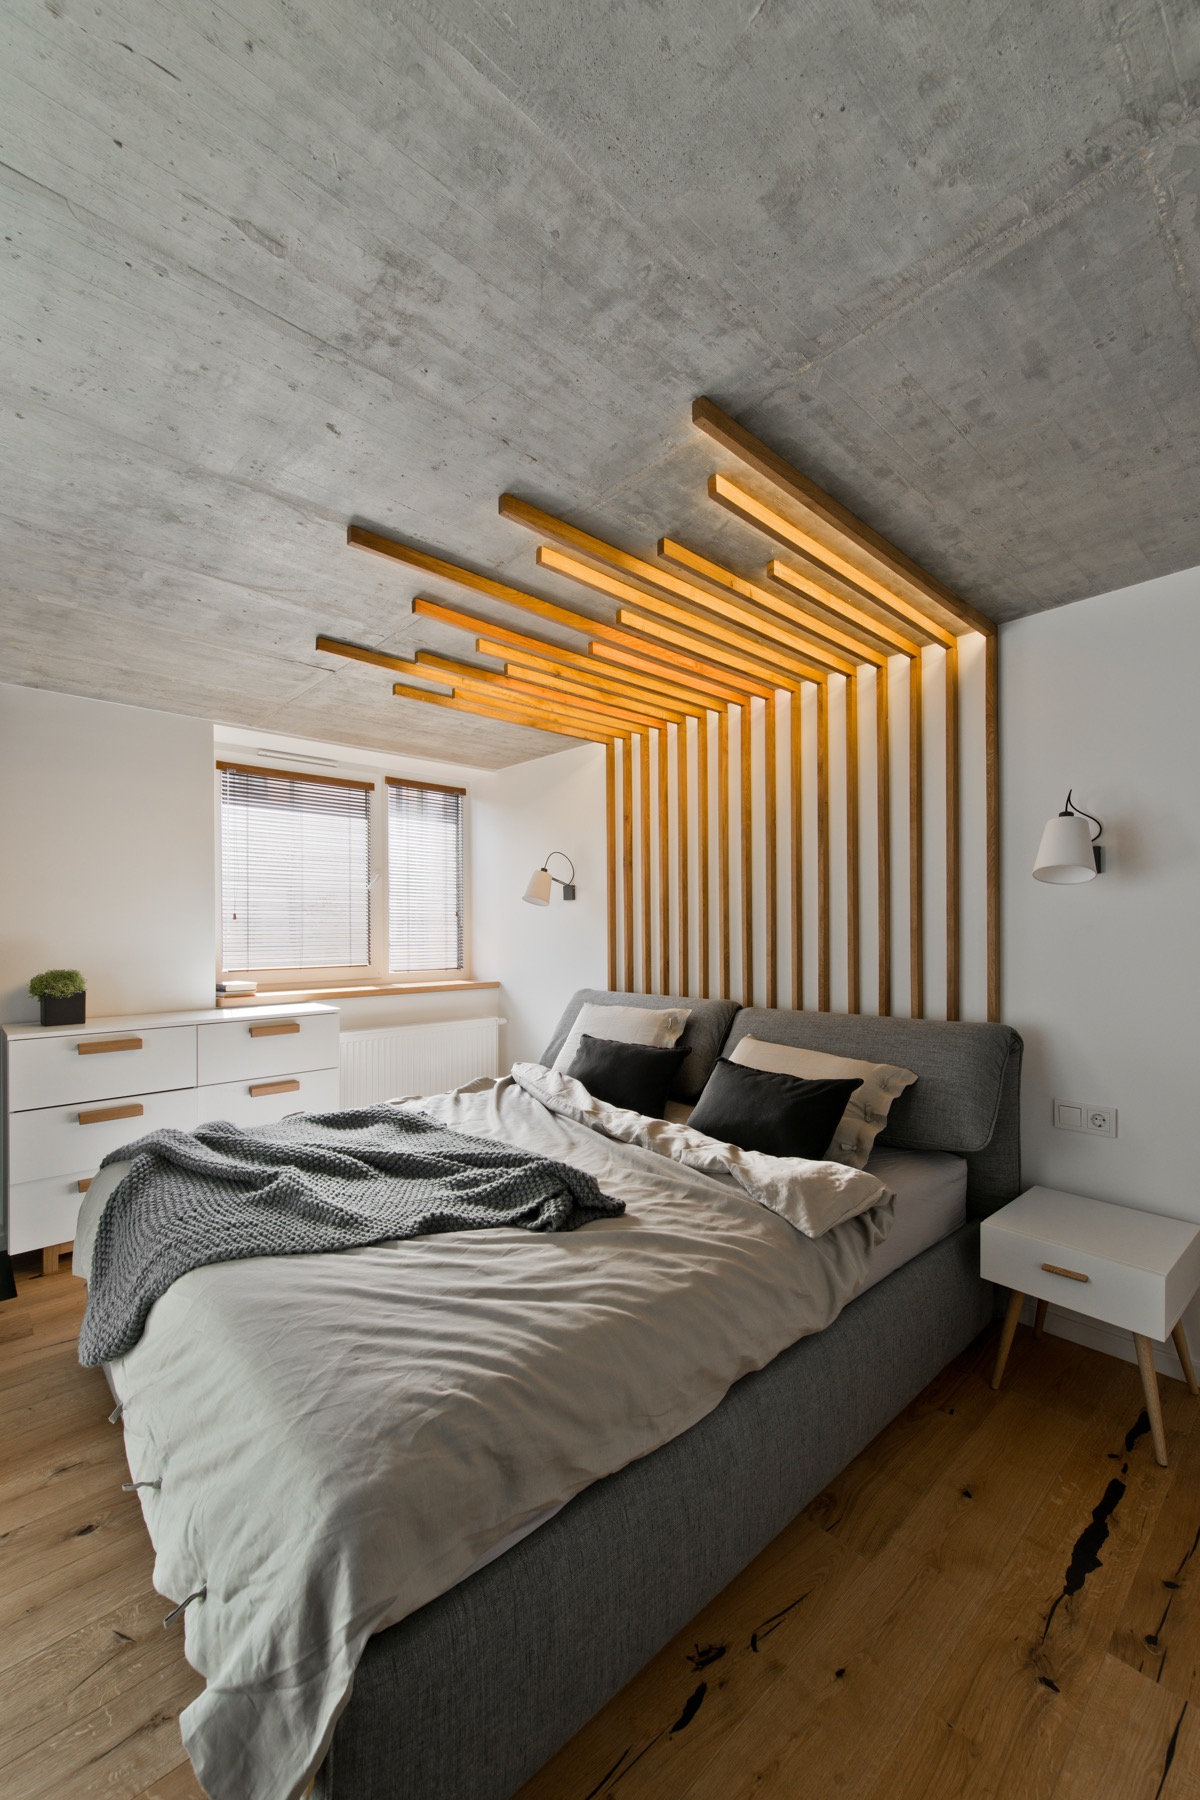 Awesome Headboard Design - Chic scandinavian loft interior